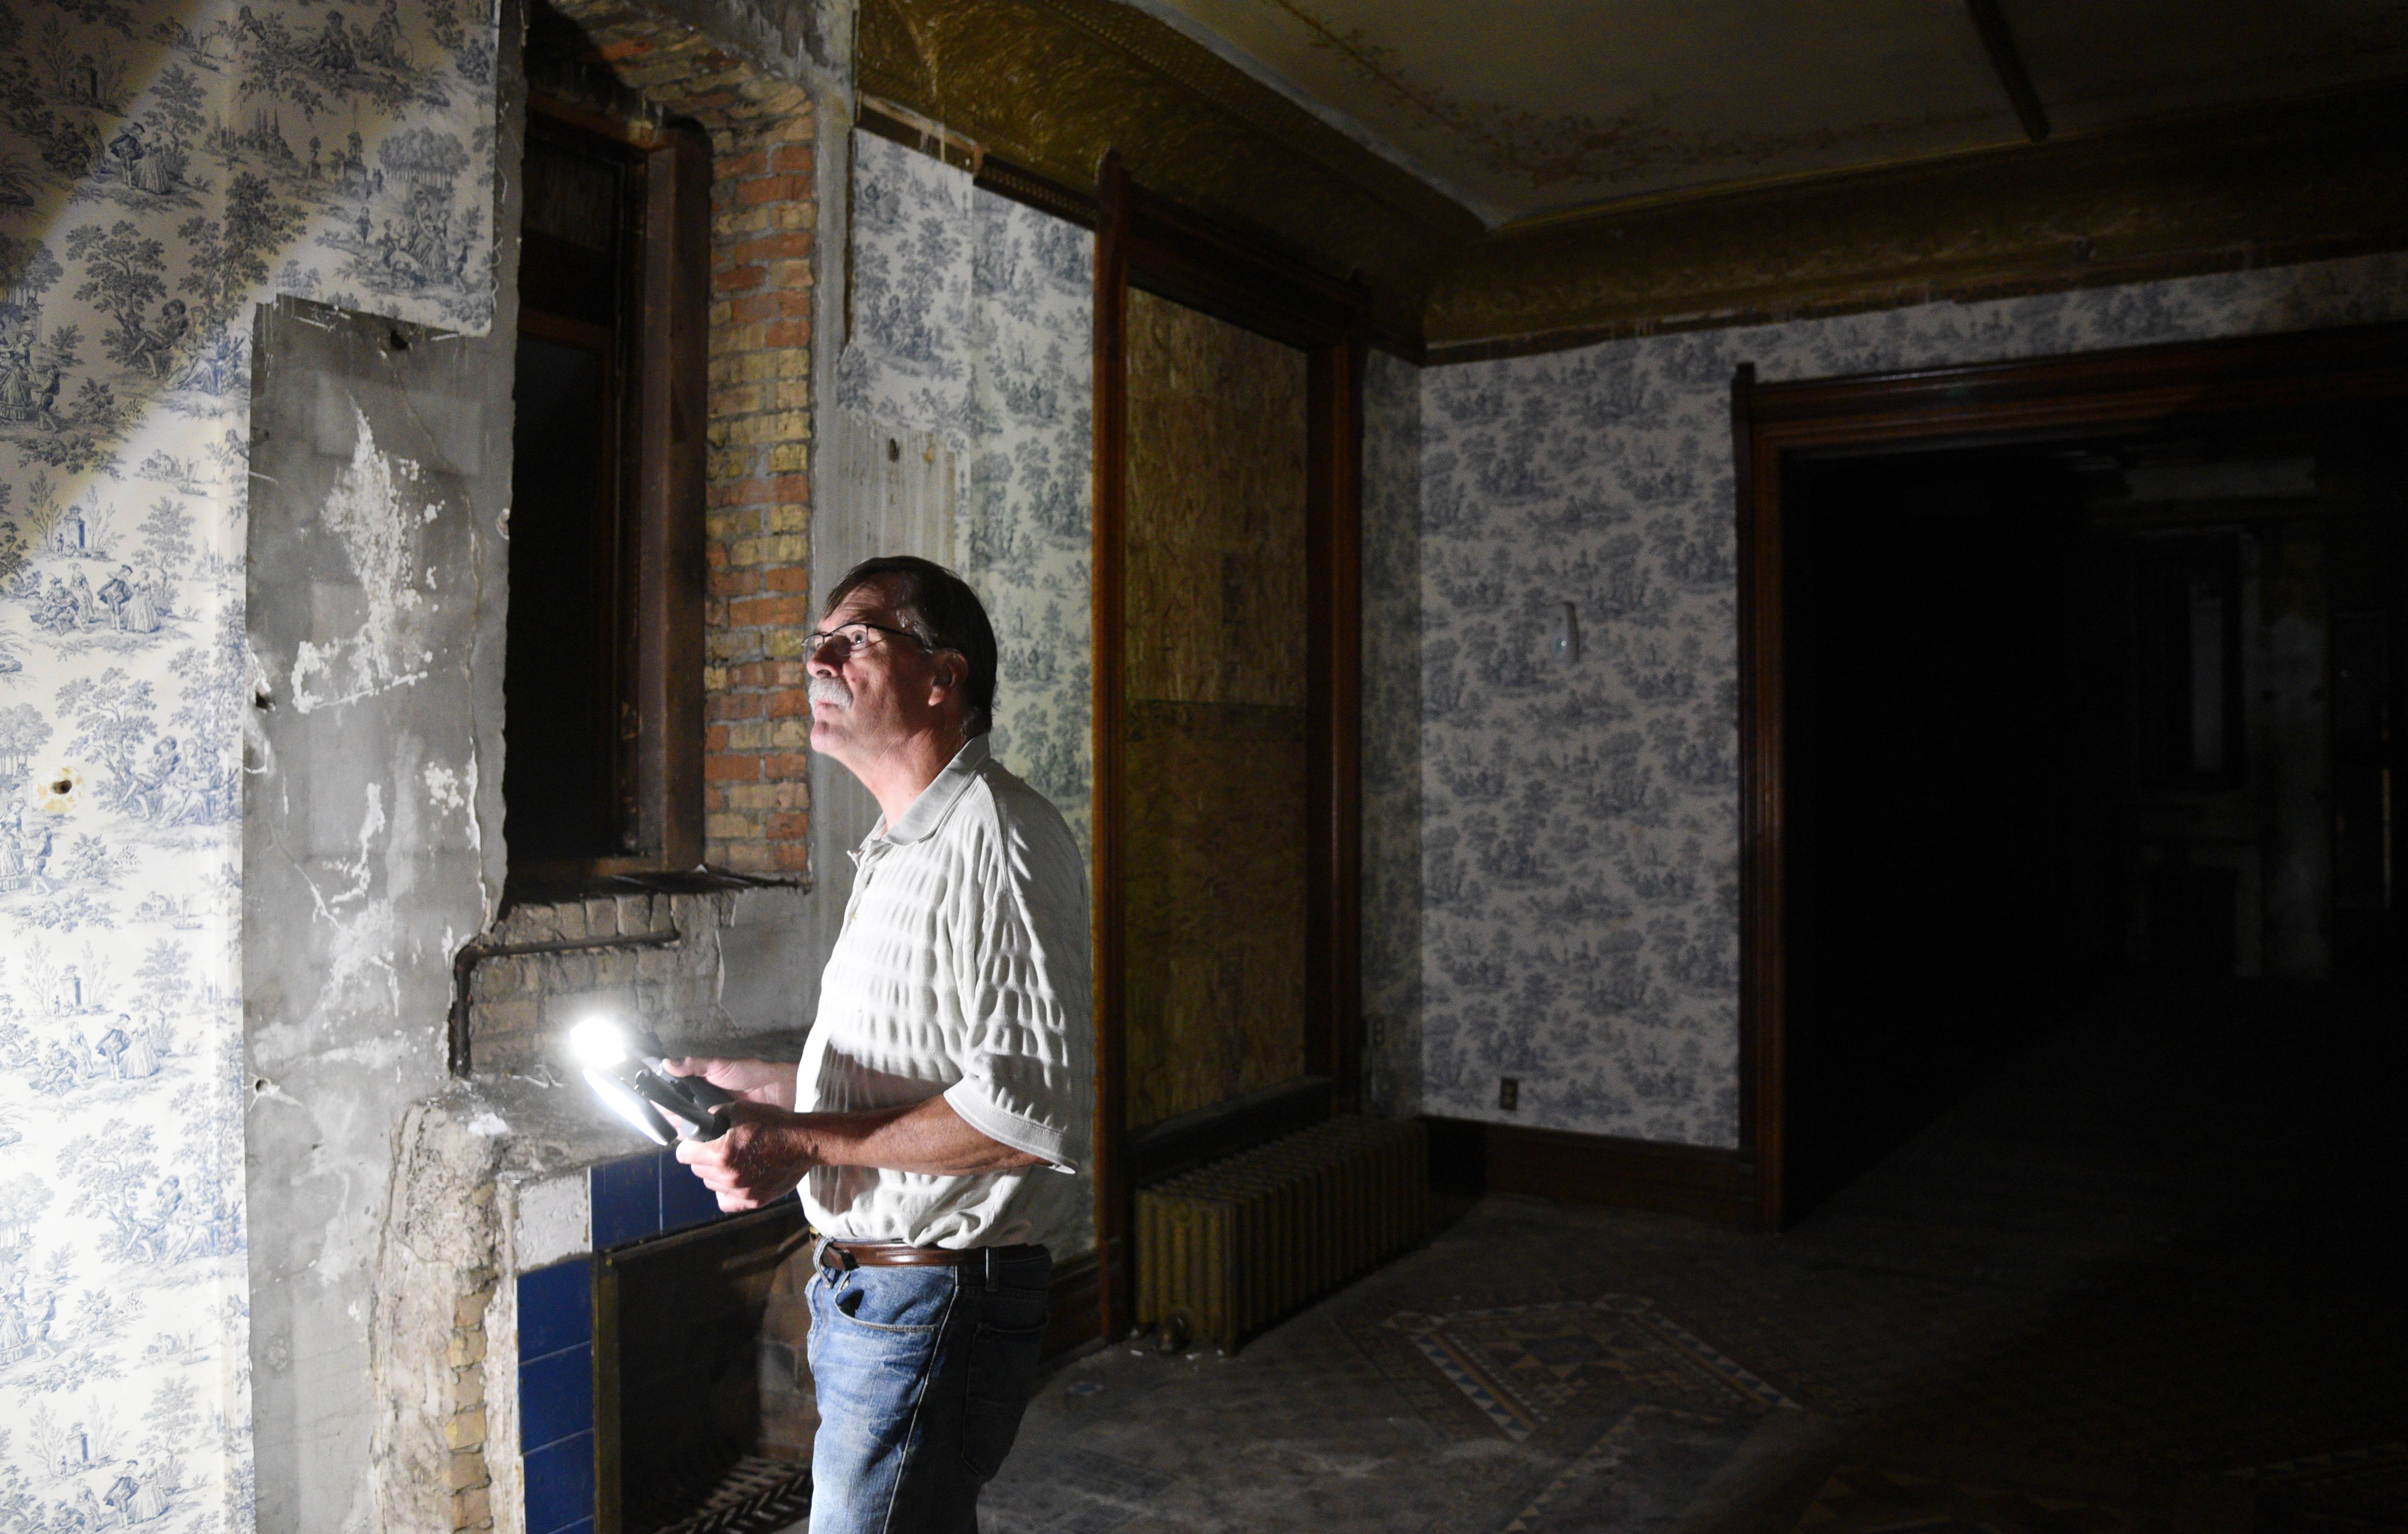 Dan Miller, president of the Gifford Park Association of Elgin, shows off some of the original features of the David C. Cook mansion.